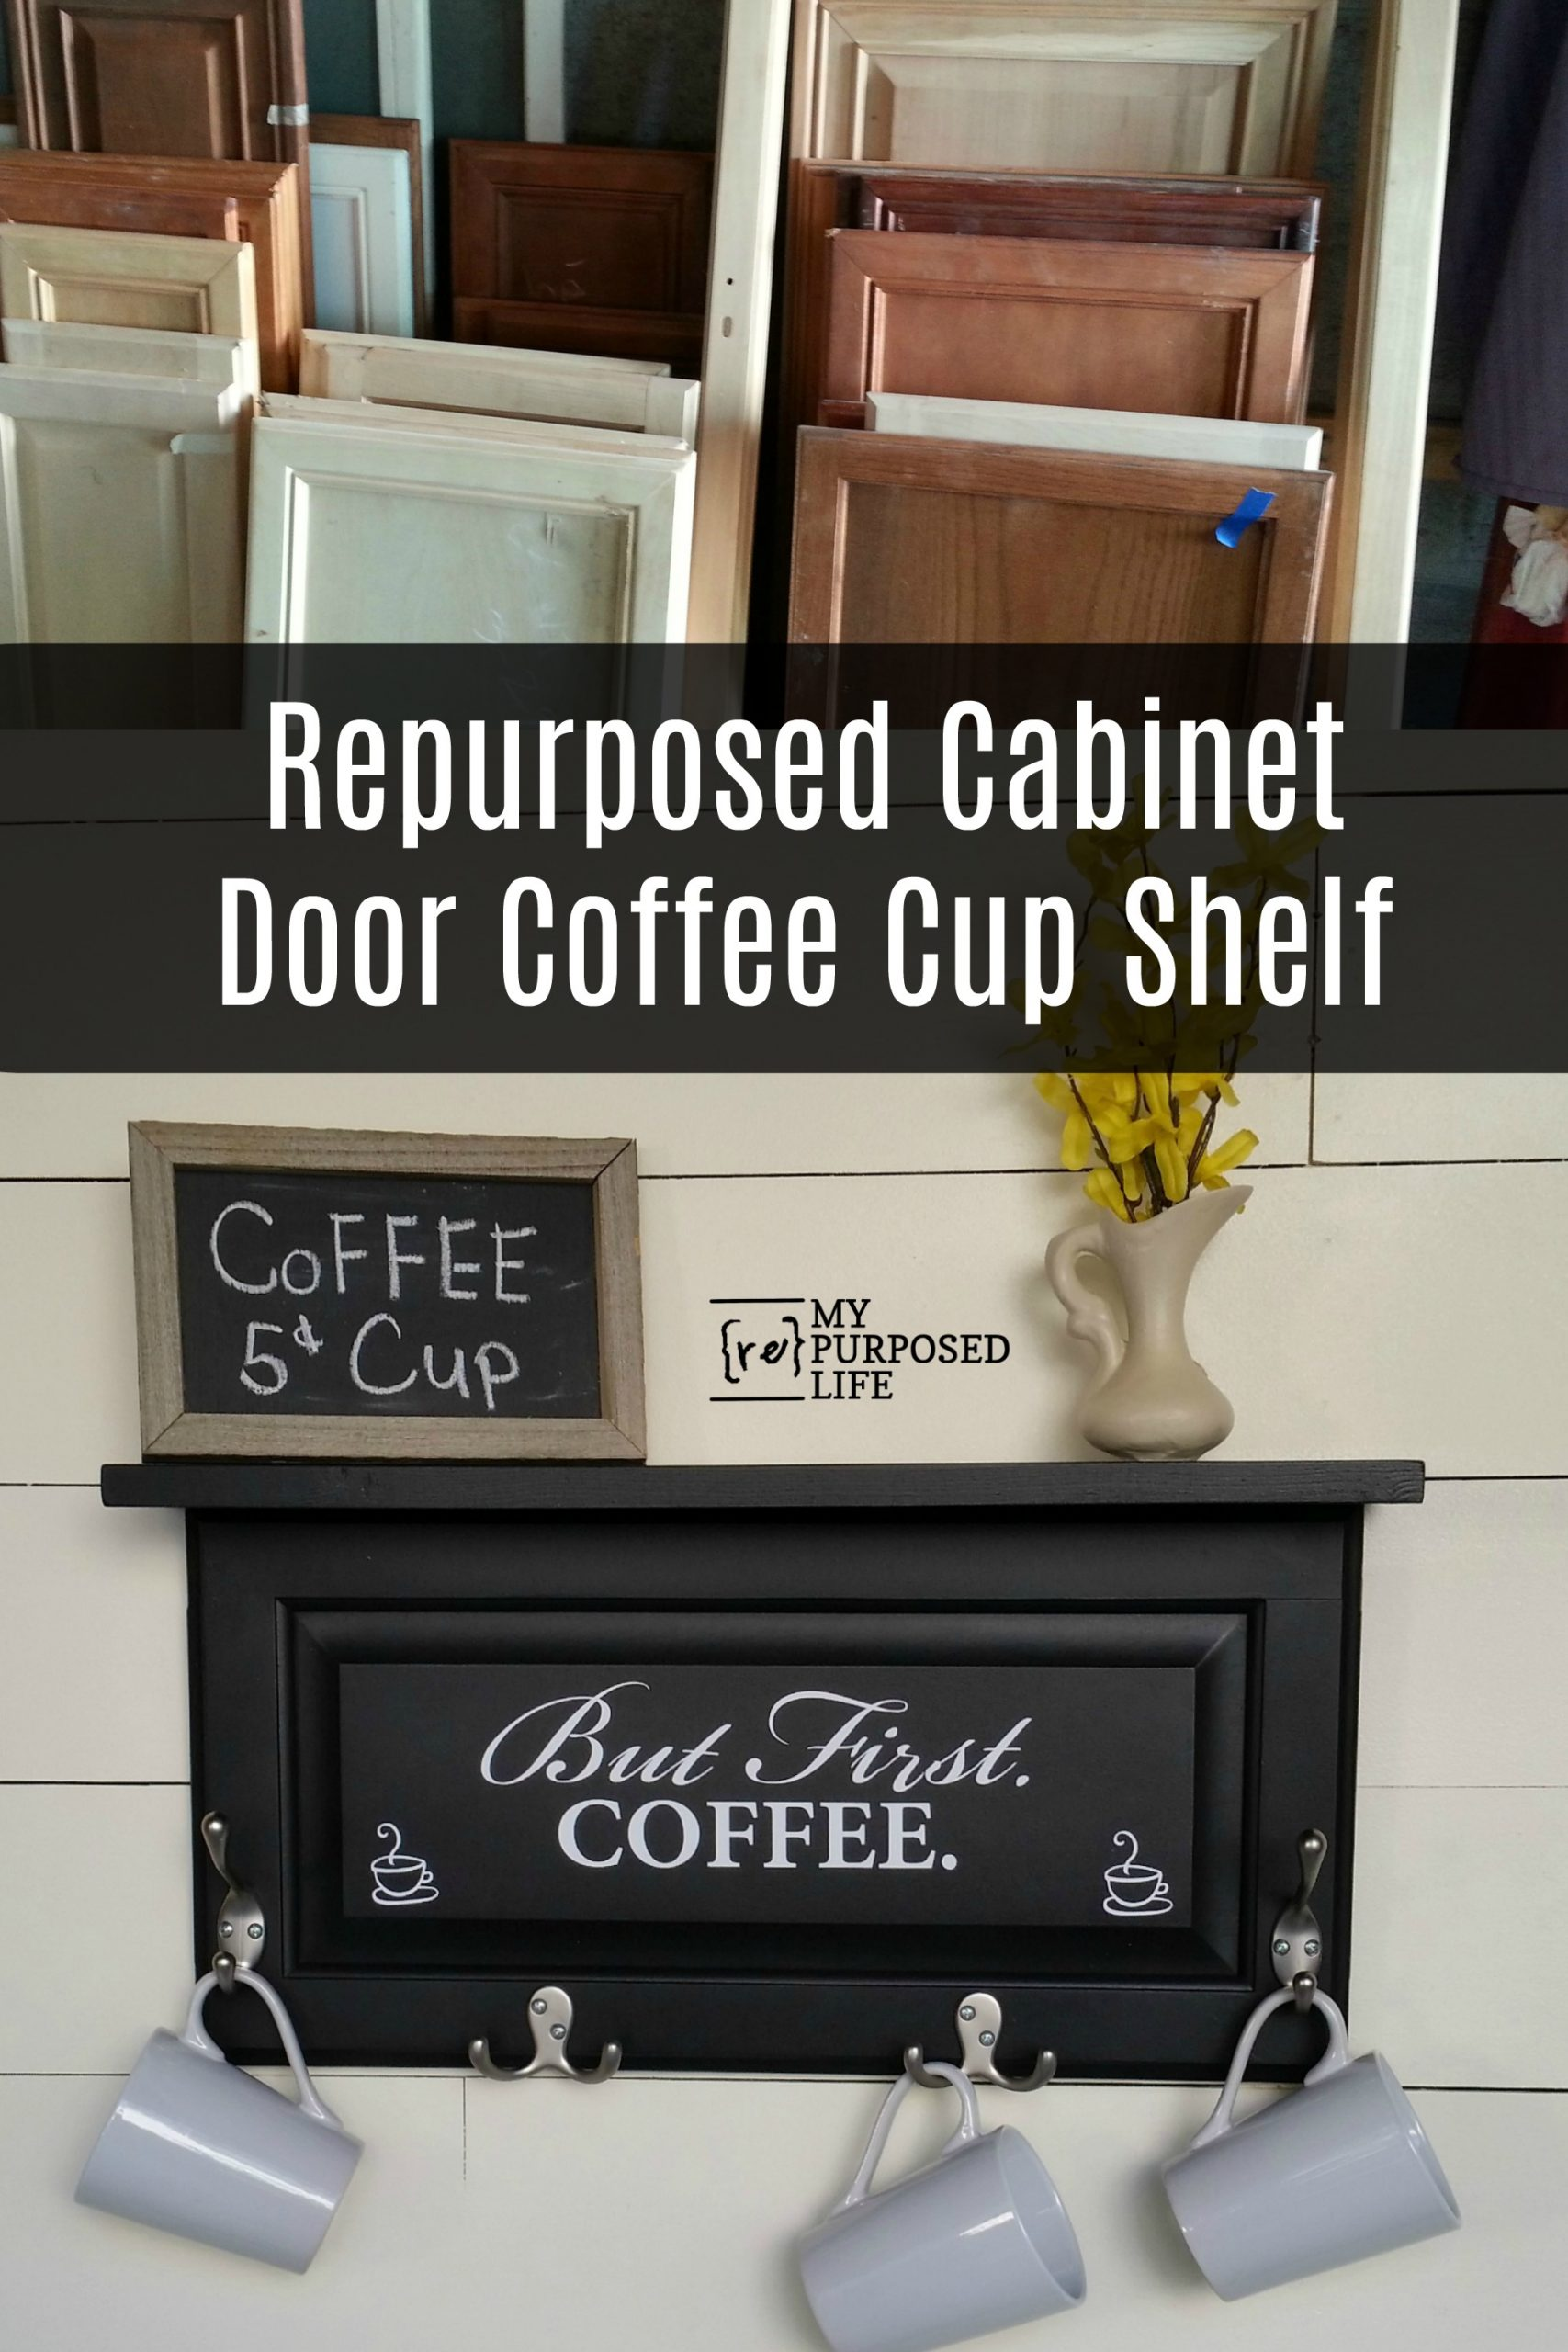 How to turn old cabinet doors into shelves or signs. Perfect home decor for coffee lovers. Hang coffee cups on the hooks and rest items on the shelf. Step by step directions and tips to make your own shelf this weekend. #repurposed #cabinetdoor #coffeelovers #shelf #kitchen #decor #MyRepurposedLife via @repurposedlife